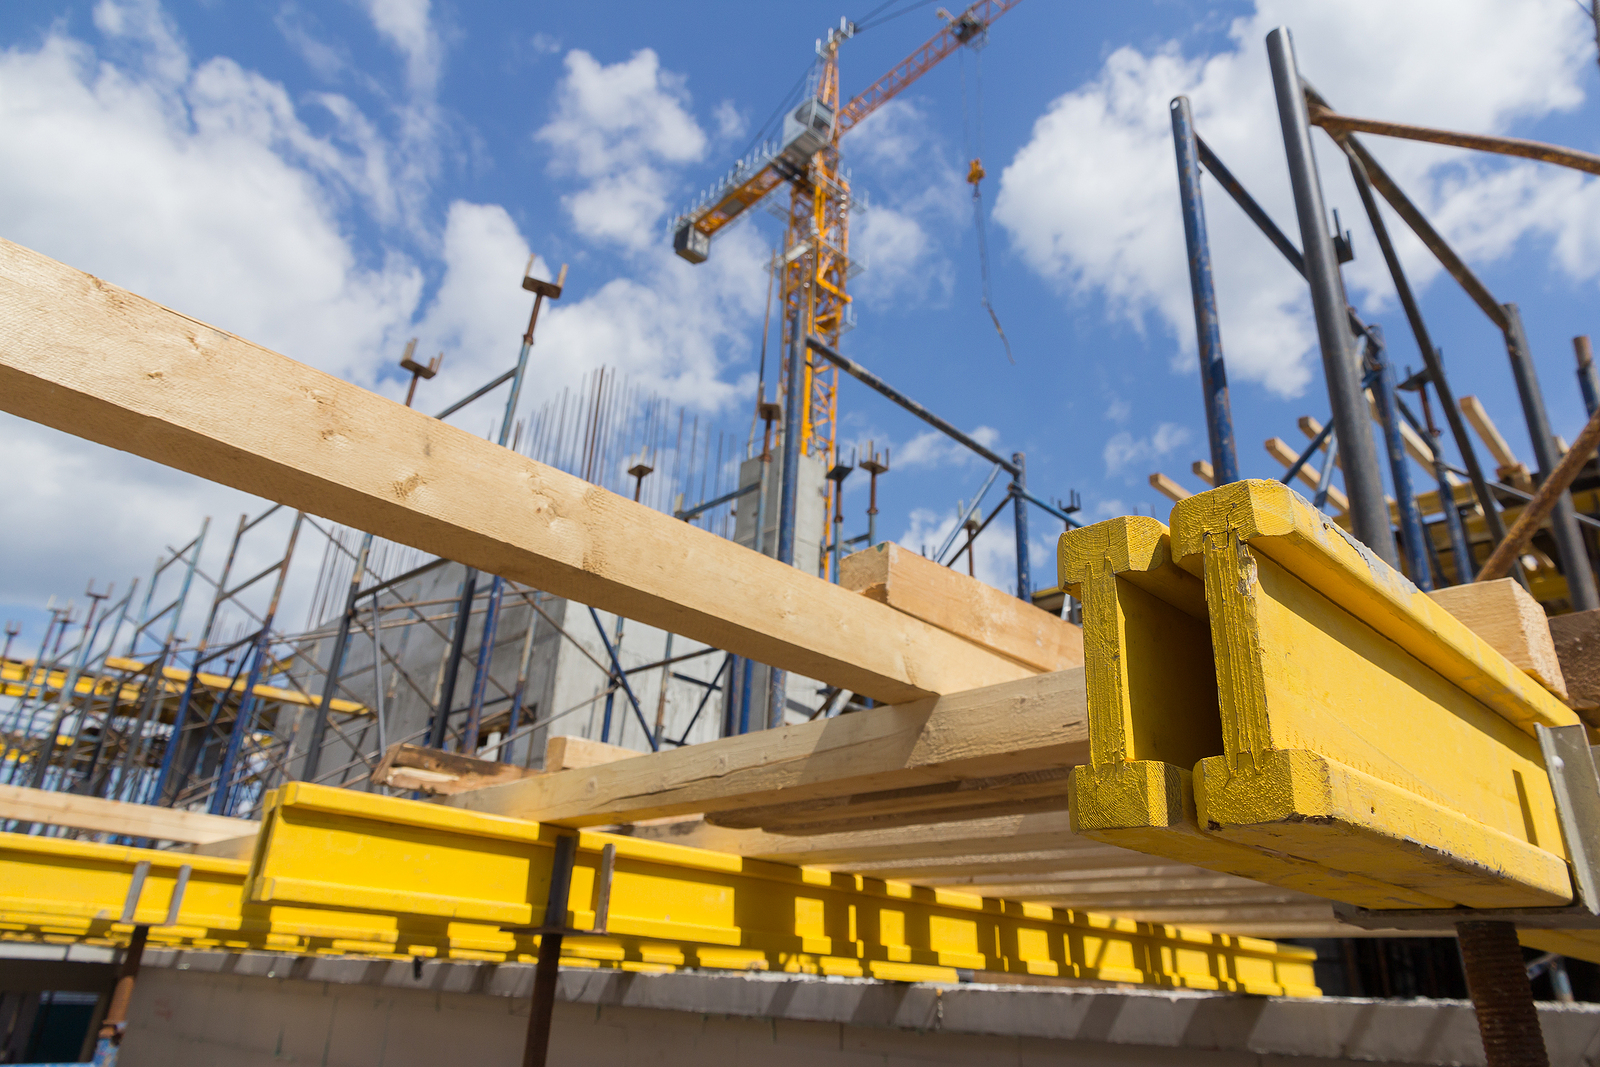 Construction Law Formwork For Monolithic Construction Building